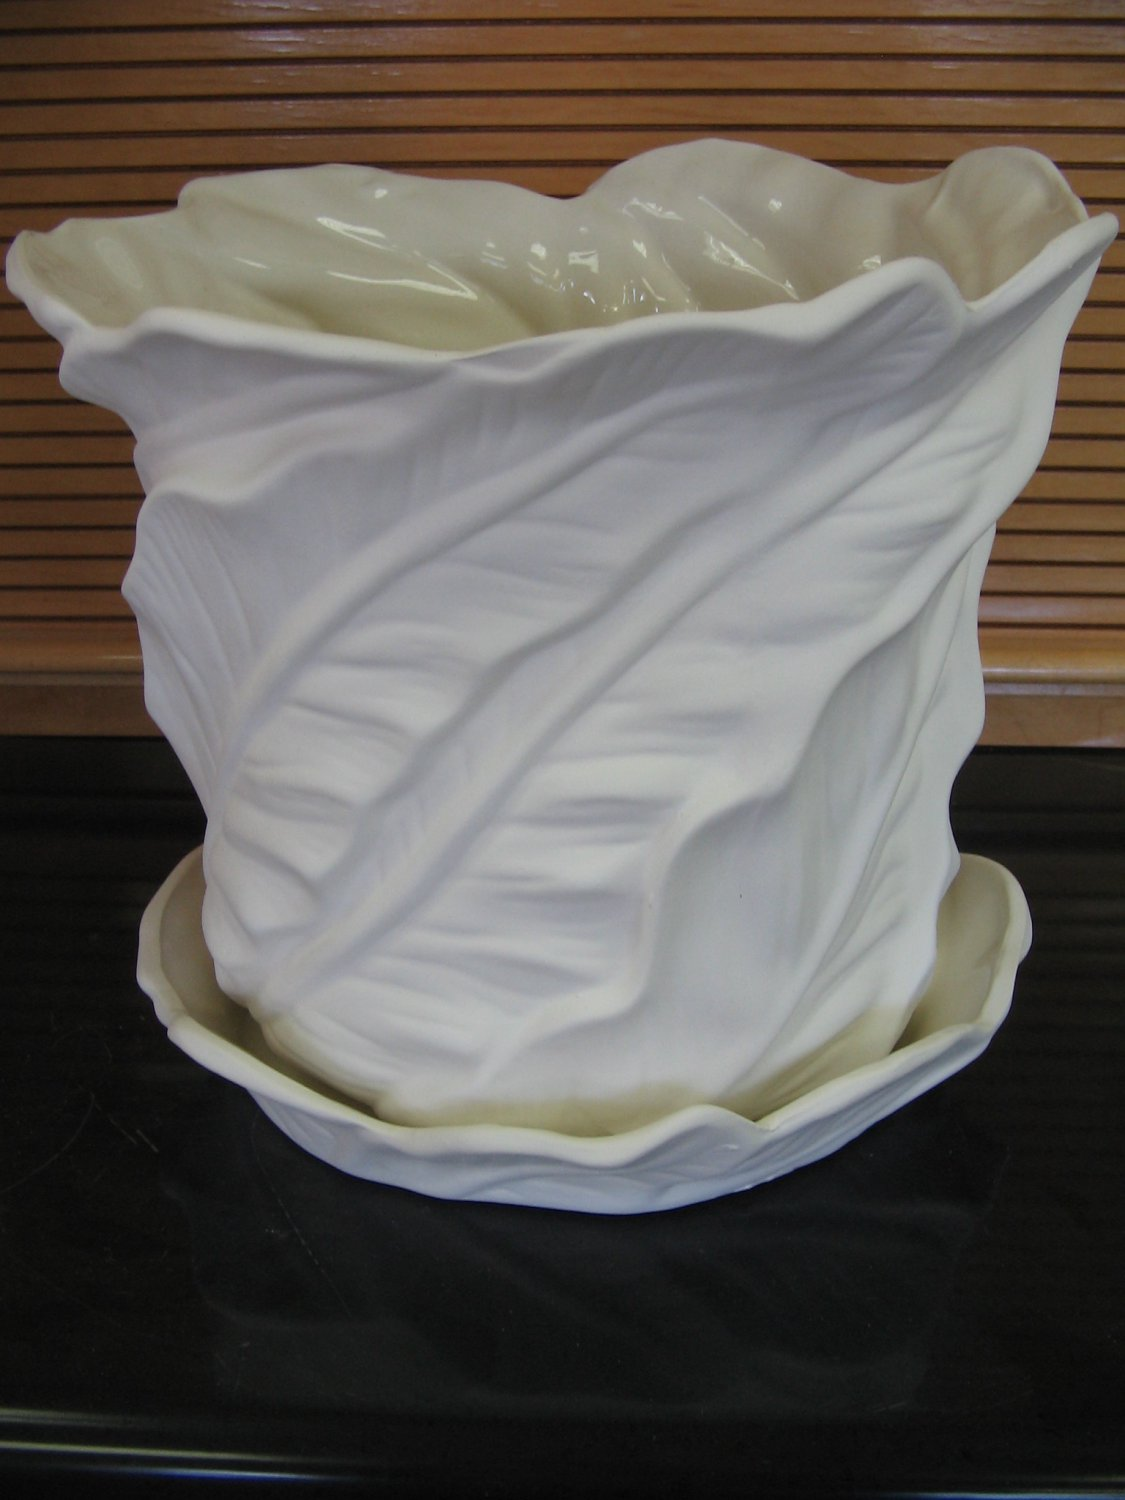 Ceramic Bisque Large Leaf Design Flower Pot With Saucer U Paint Ceramics